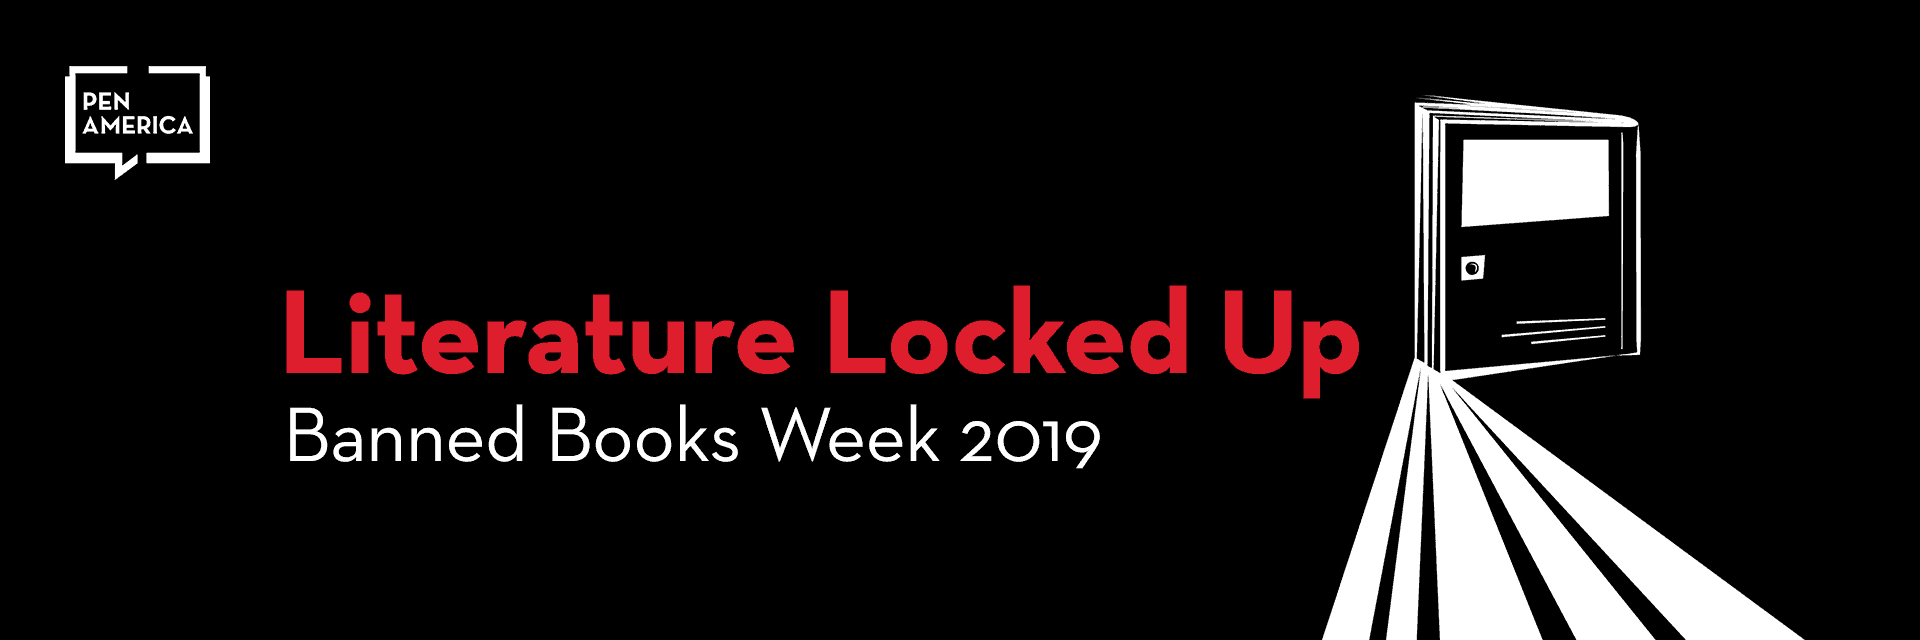 Literature Locked Up: Banned Books Week 2019